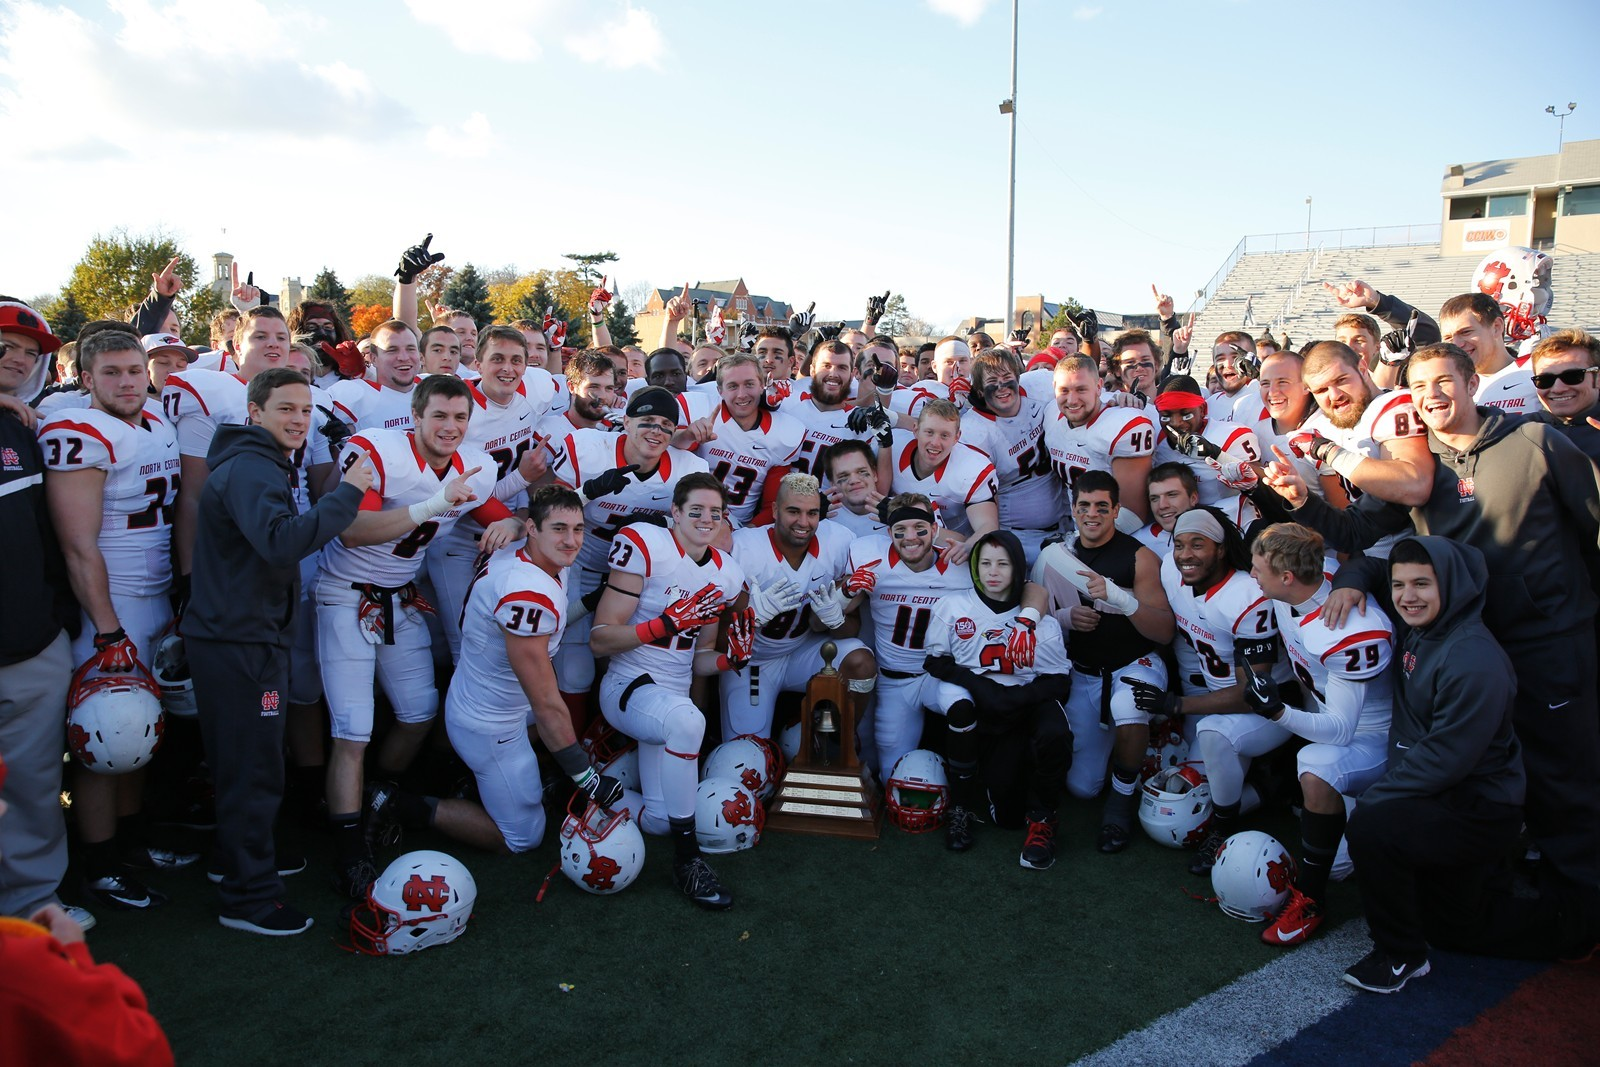 Cardinals Stay No  2 in Regional Football Rankings - North